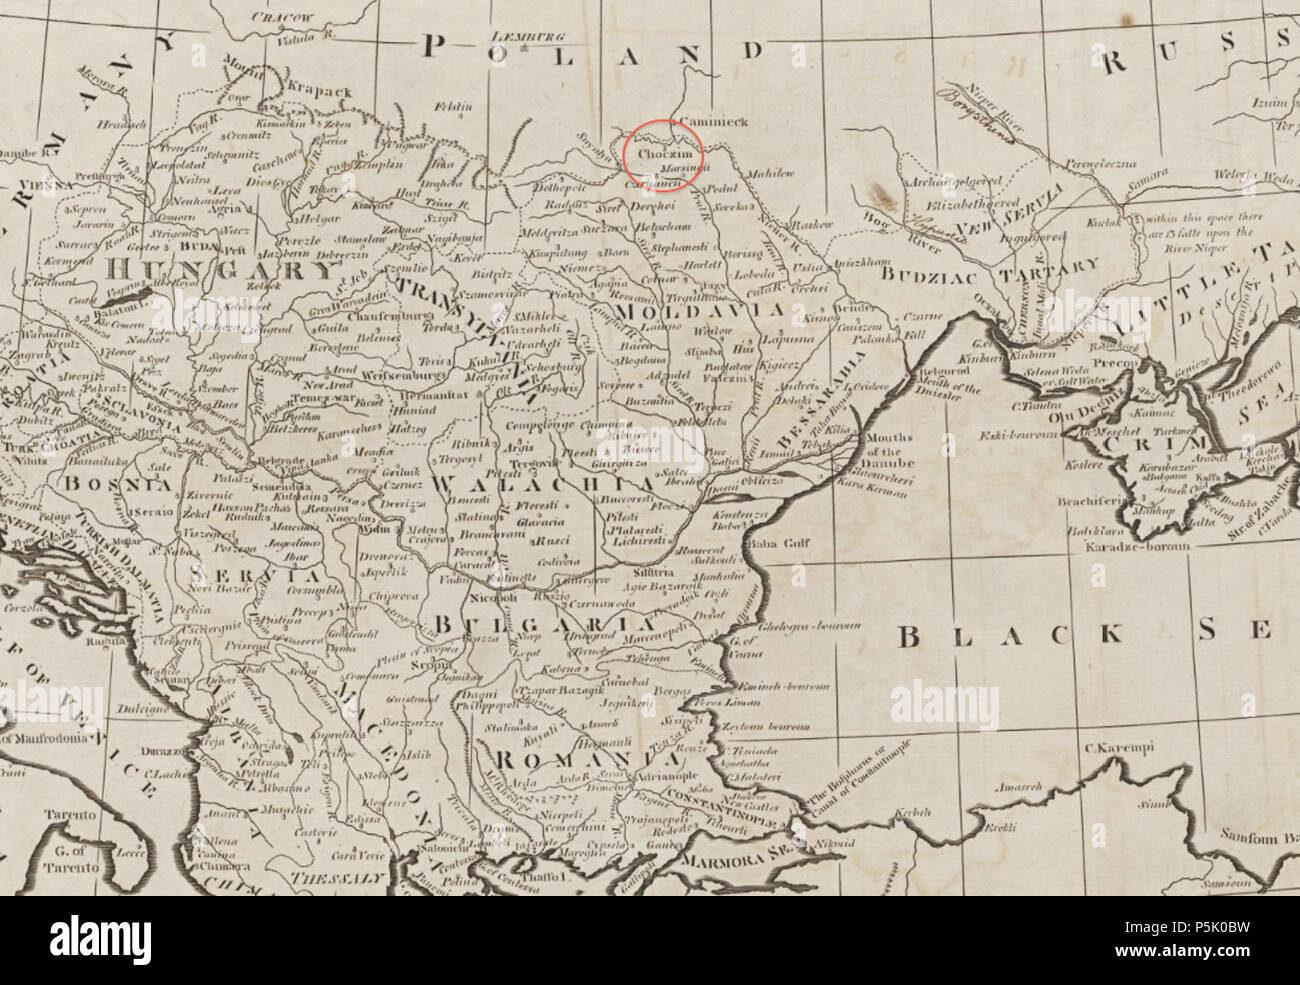 27 1800 Choczim map Turkey in Europe and Hungary by Mathew Carey BPL Images Of Map Europe on map of asia 1900, blank map europe 1800, map of spain, map of austria-hungary during ww1, map 10000 years in the future, map south america 1800, map with 7 emirates uae, map of absolute monarchs, map russia 1800, map in europe, map west indies 1800,